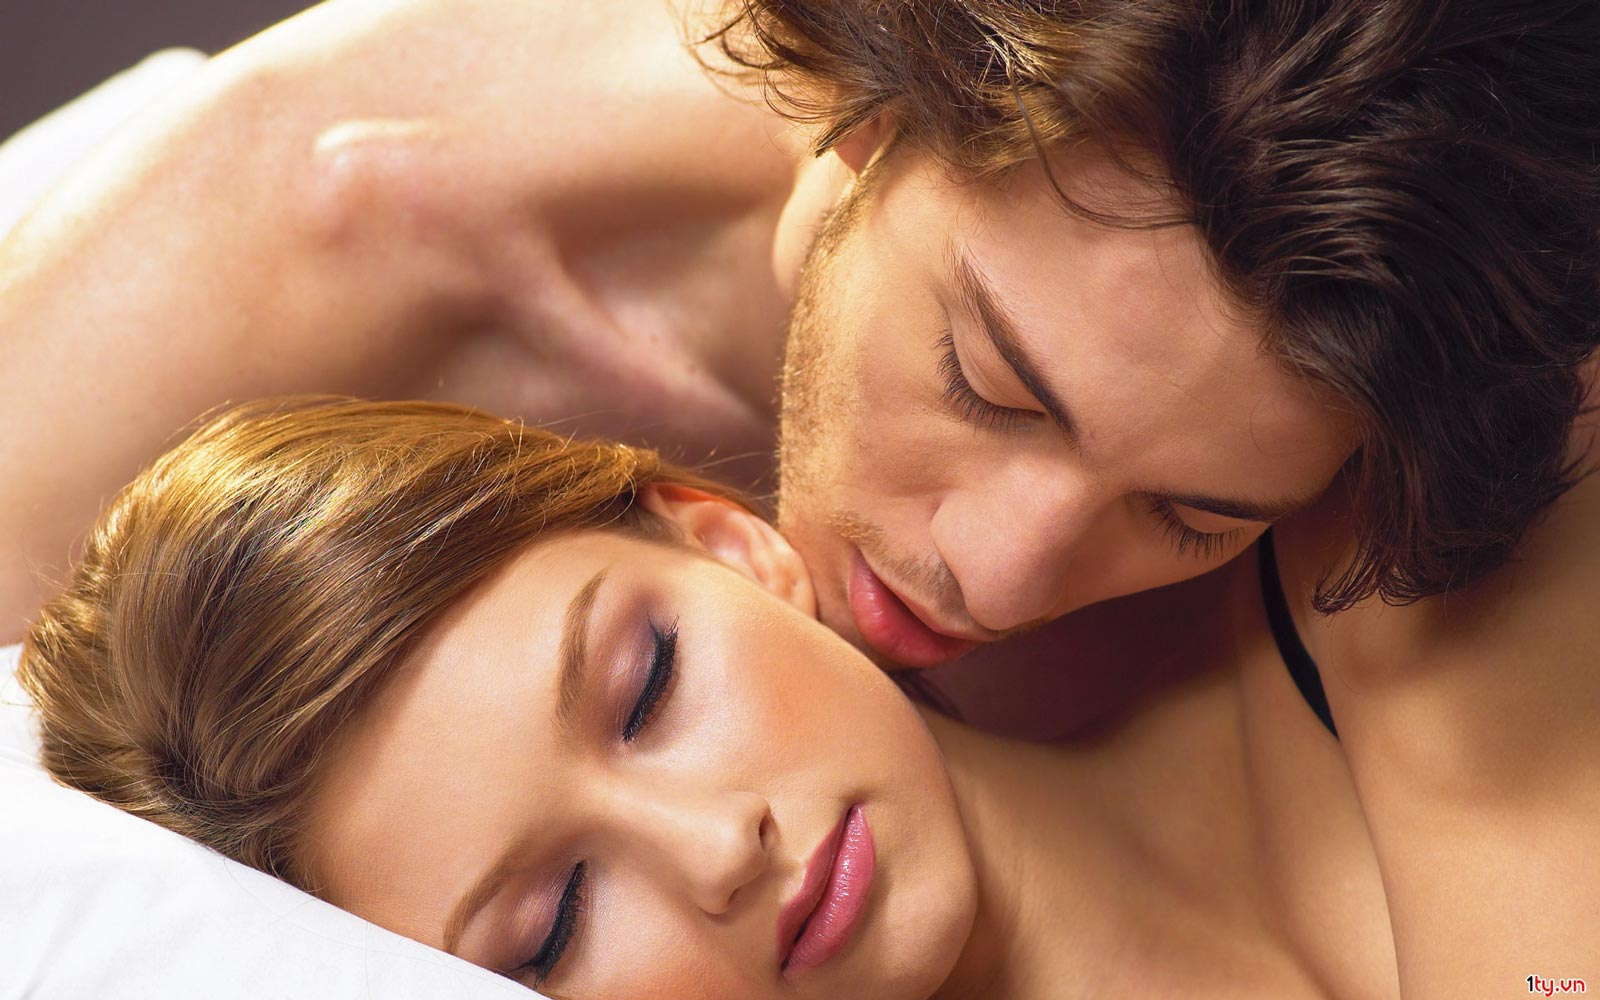 pics of missionary position